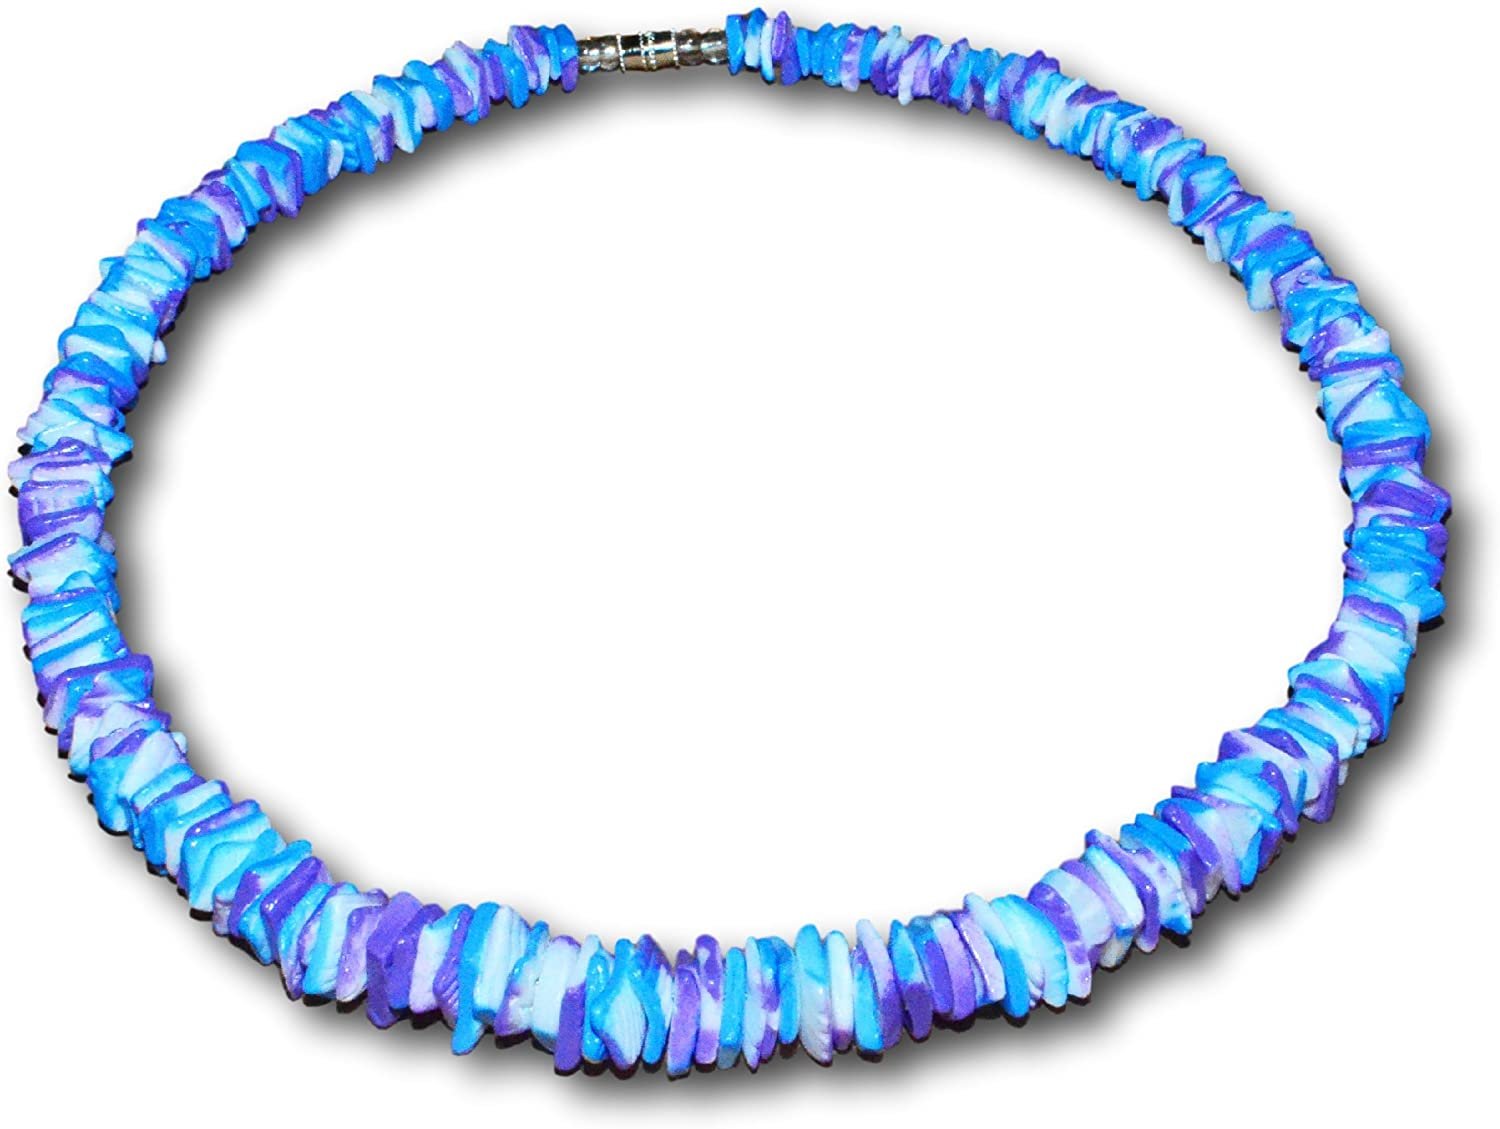 Native Treasure Puka Max 74% OFF Chip Clam Tie-Dyed Blue Necklace Vio New Shipping Free Shipping Shell